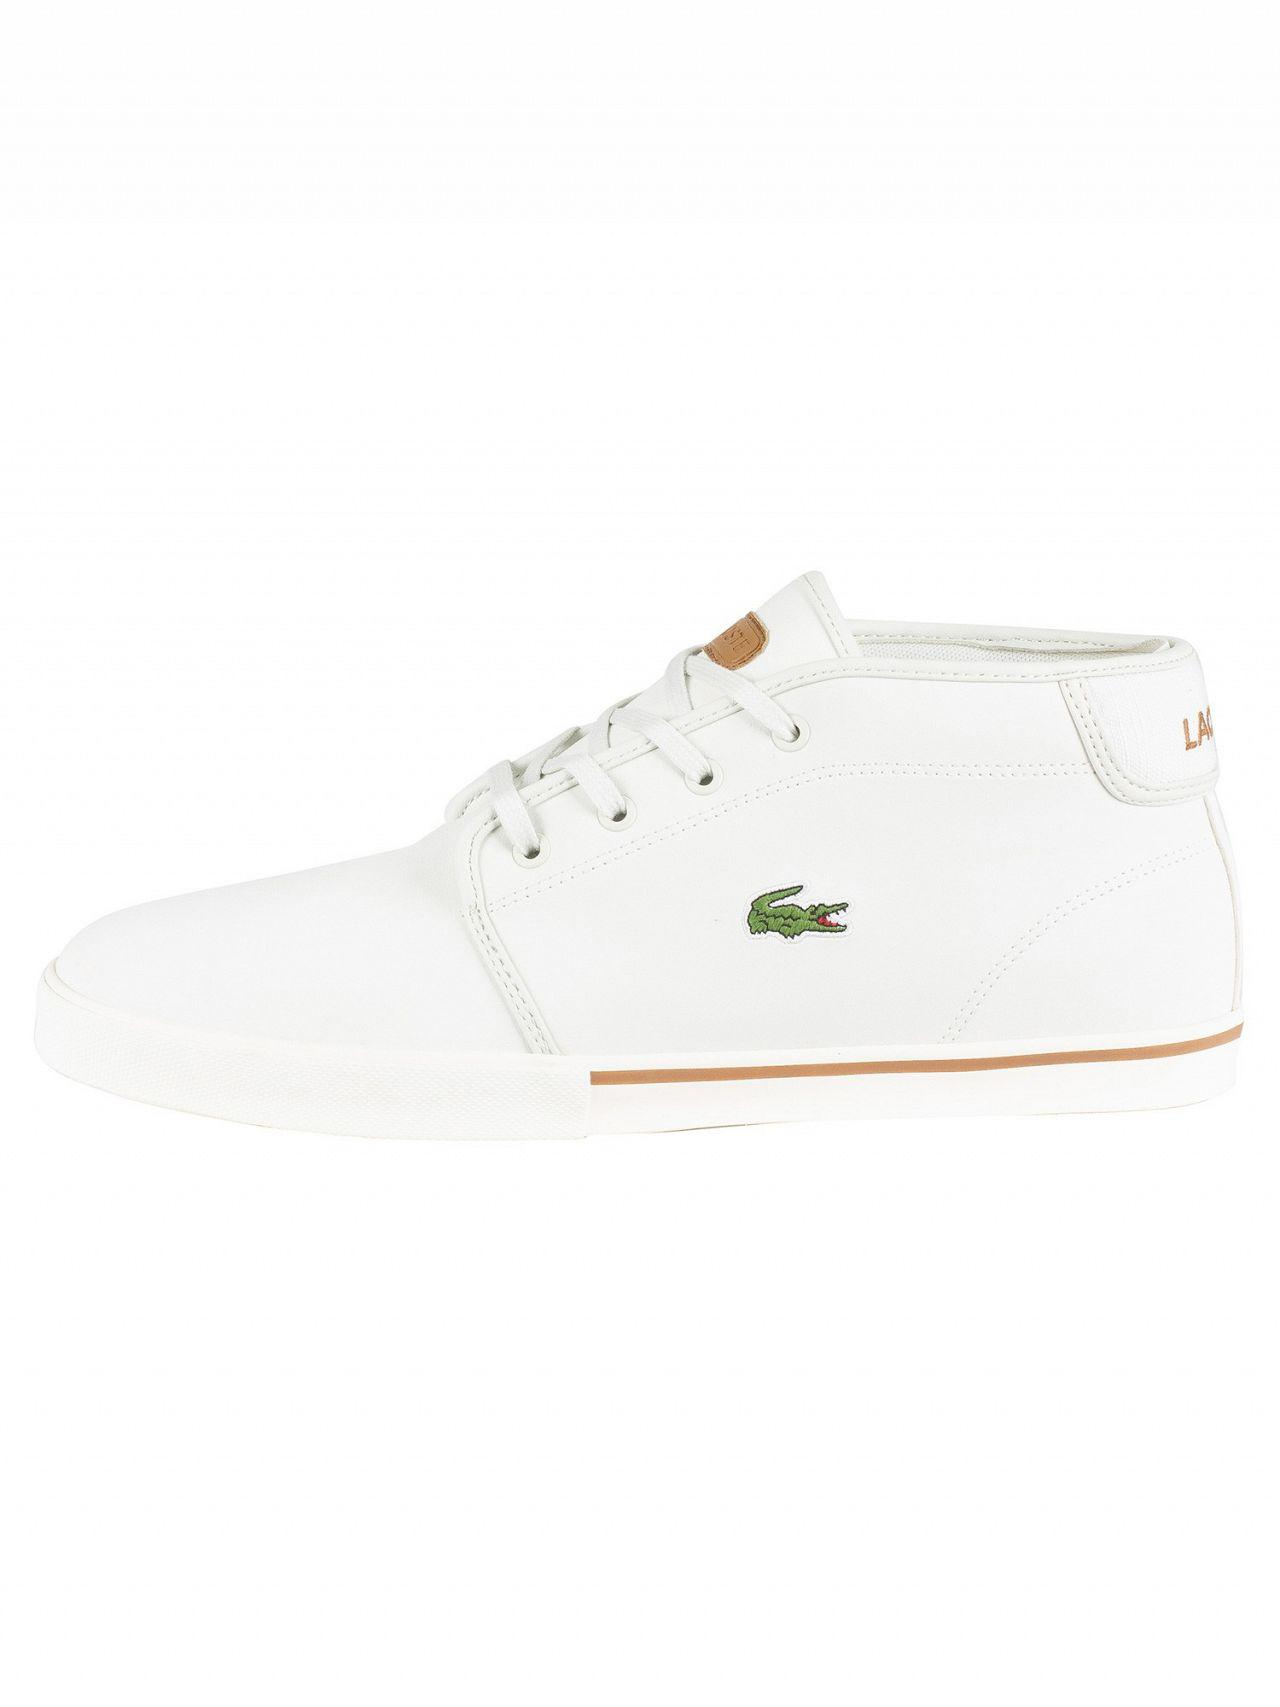 5ce54d4fd690 Lyst - Lacoste Off White light Brown Ampthill 119 1 Leather Trainers in  White for Men